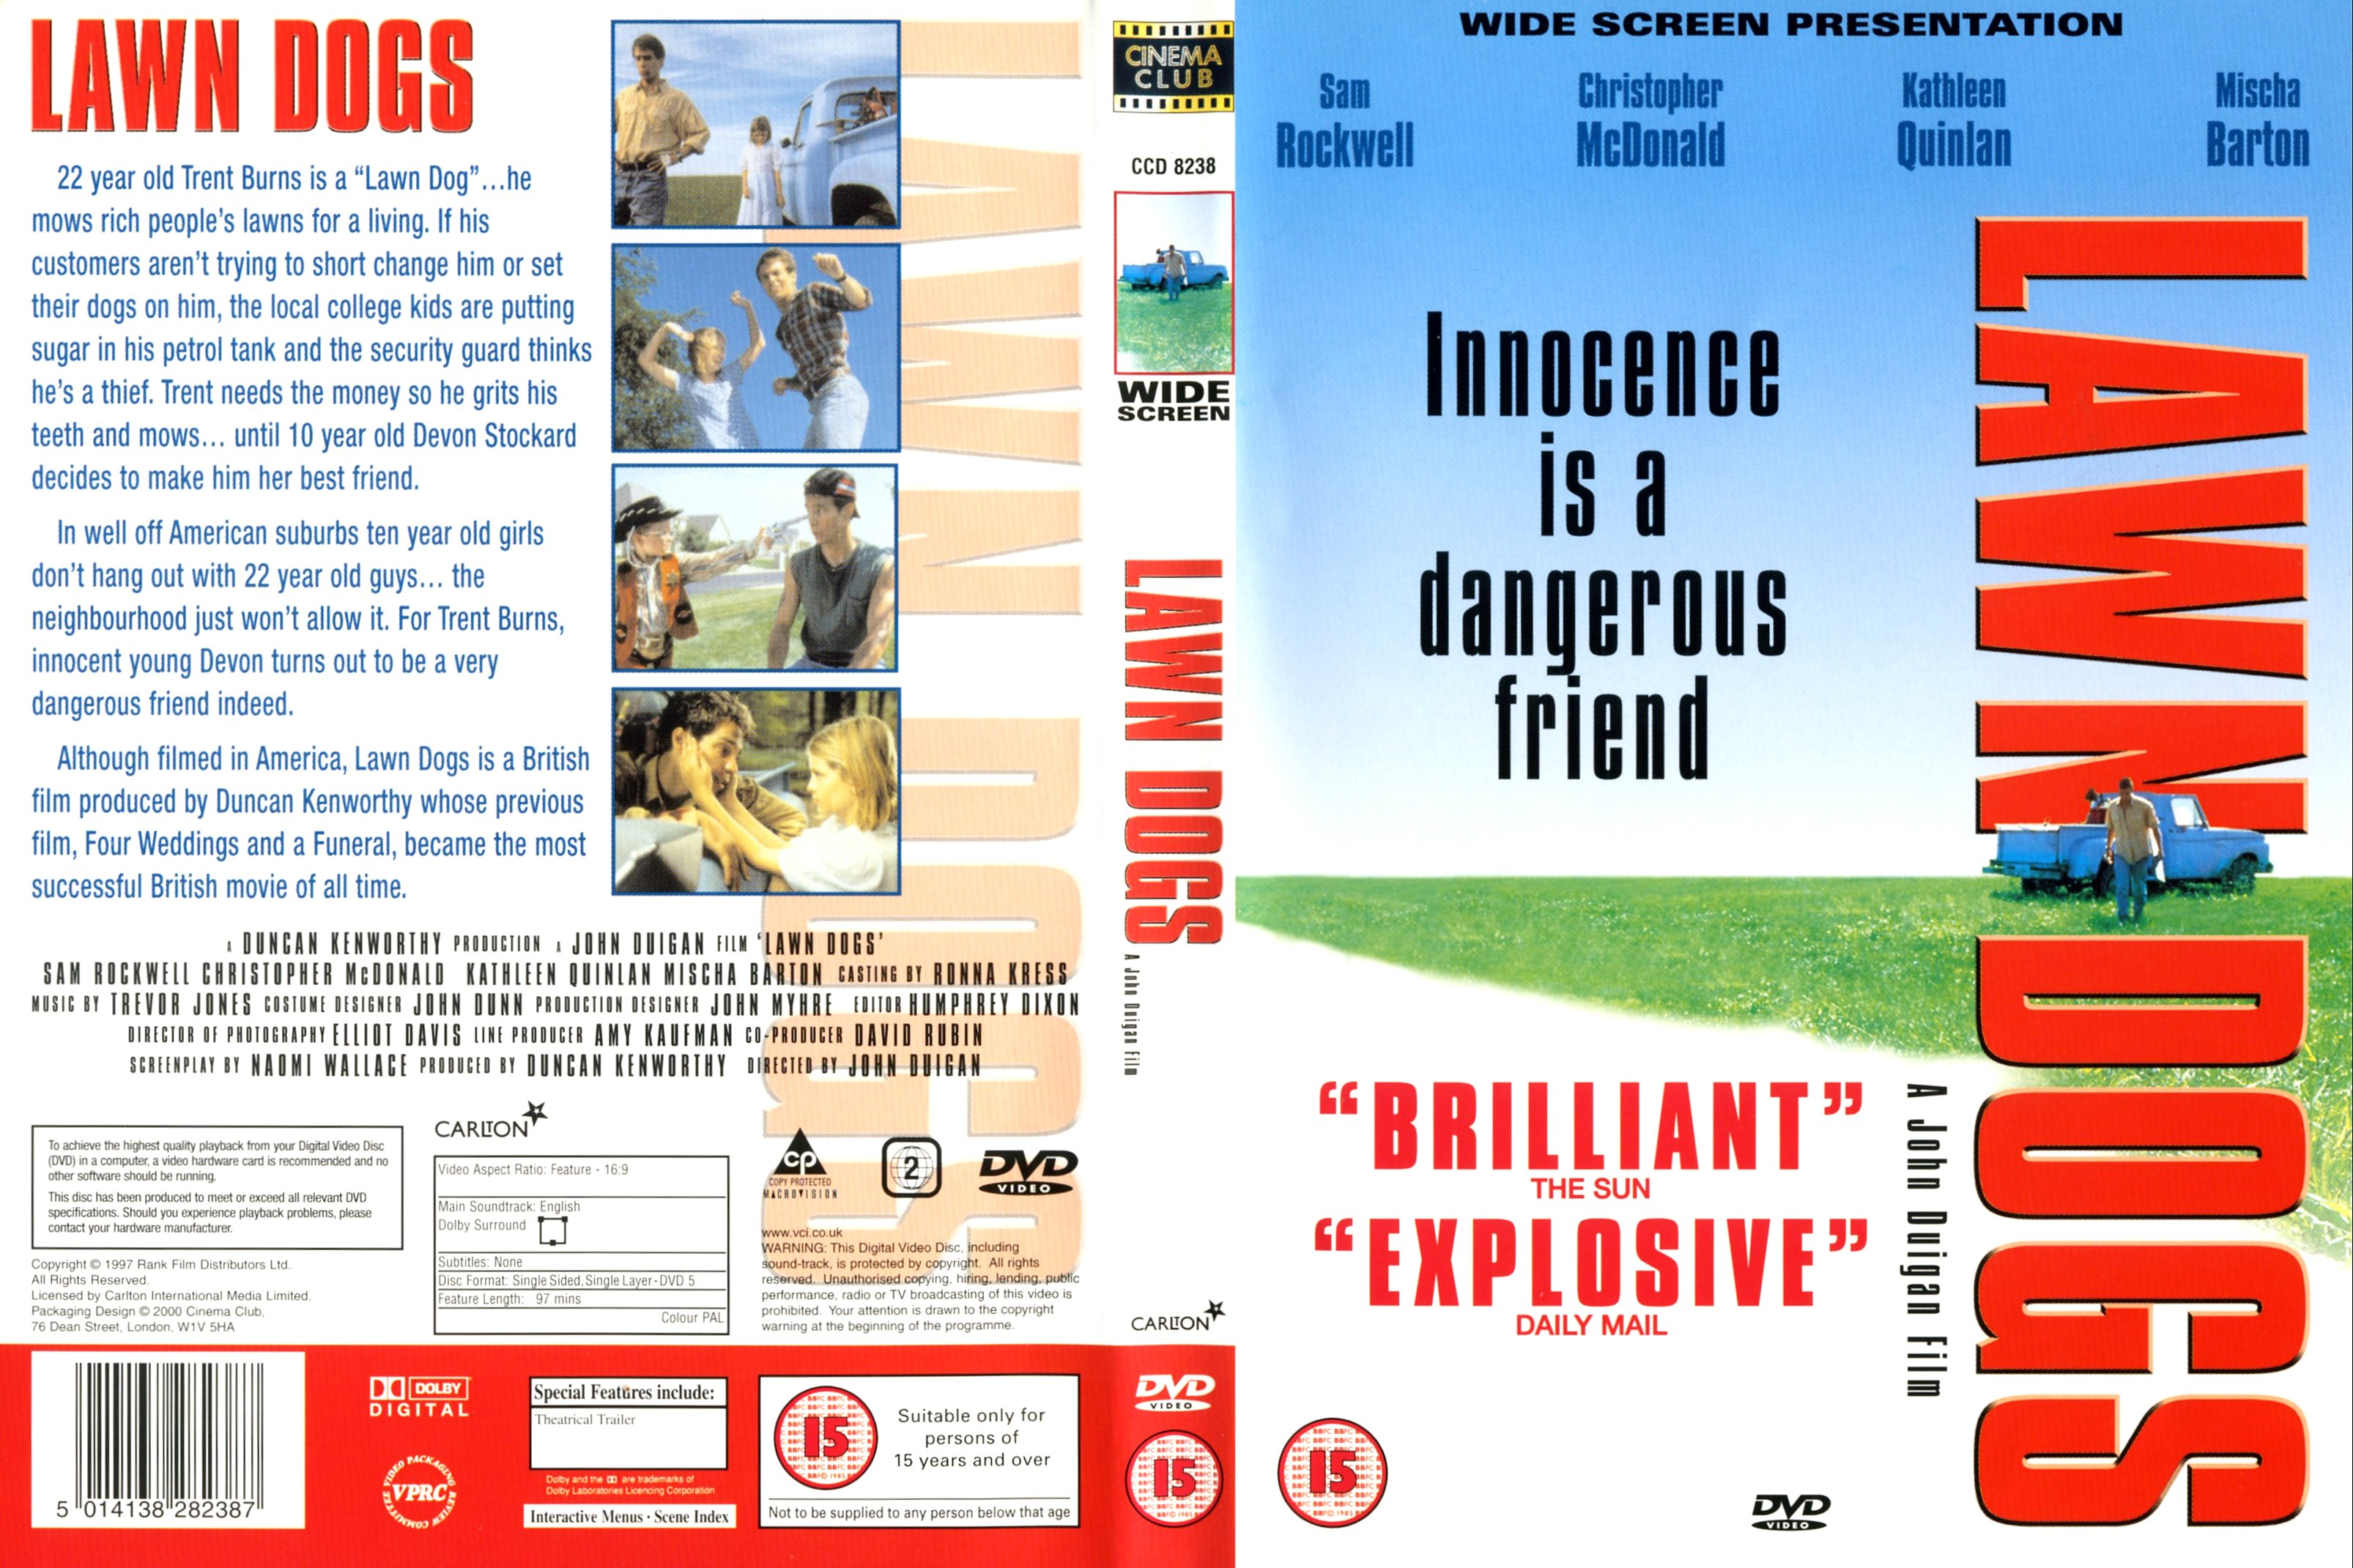 lawn dogs full movie